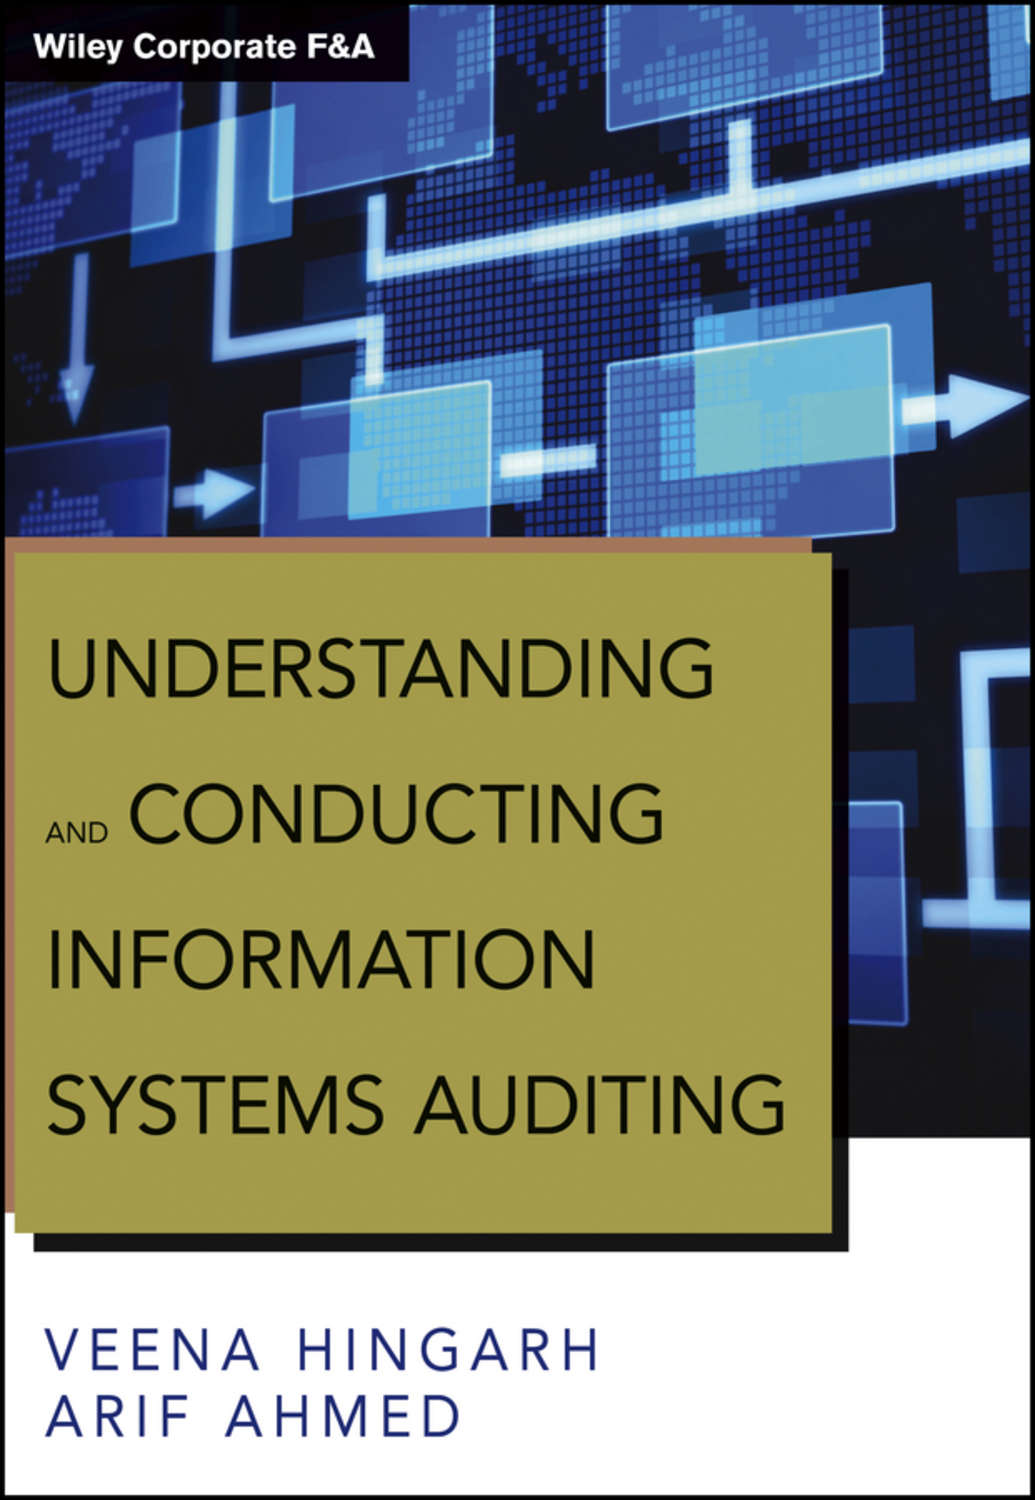 understanding the basic framework of an information system Theories are formulated to explain, predict, and understand phenomena and, in many cases, to challenge and extend existing knowledge within the limits of critical bounding assumptions the theoretical framework is the structure that can hold or support a theory of a research study the theoretical.